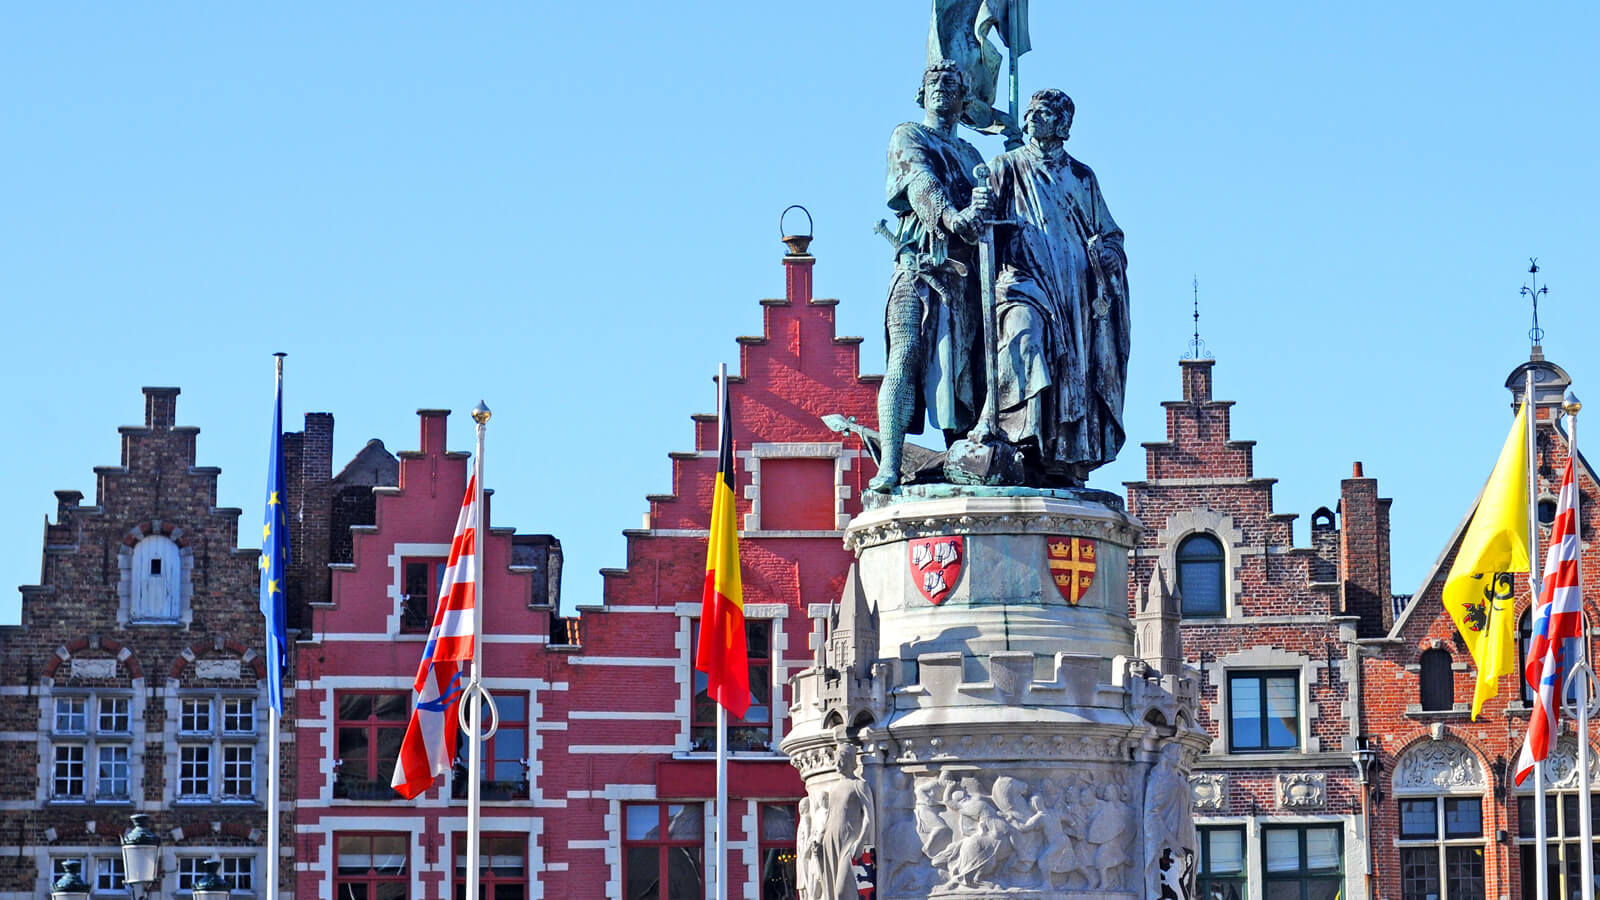 A statue of two men in Brugge with flags in the background.